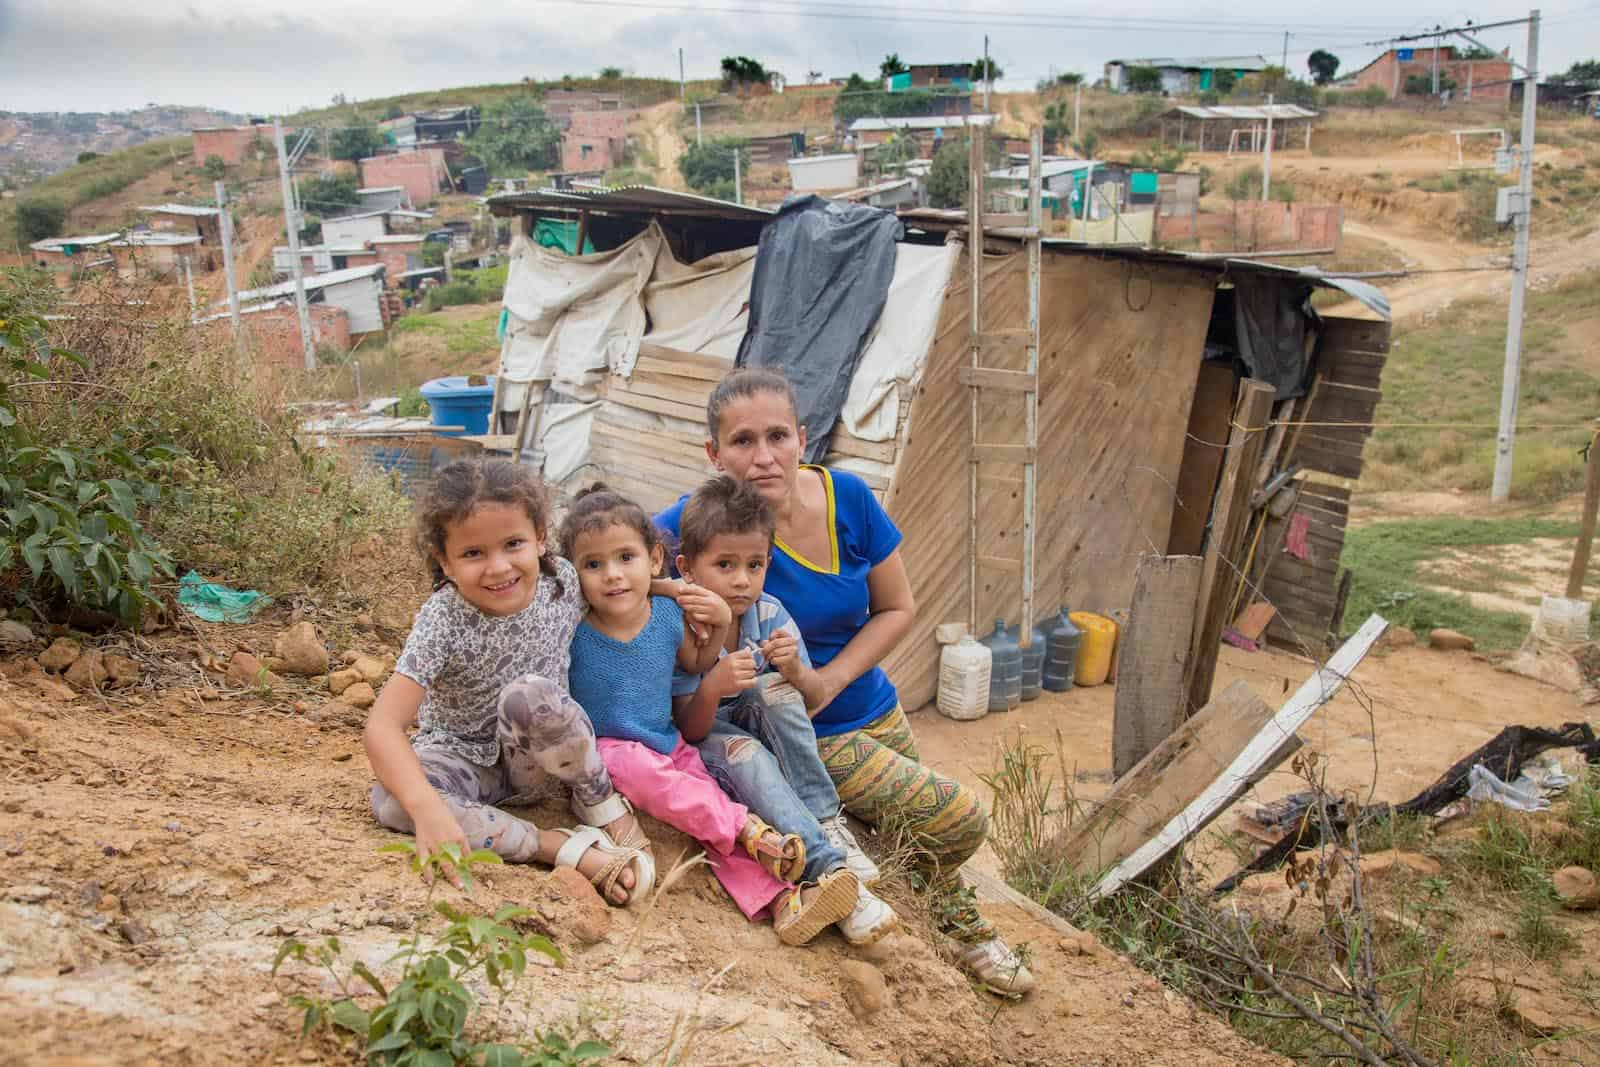 A woman and three children sit outside of a one-room home made of wood and plastic tarps where they are housing people who have left Venezuela after the political crisis.